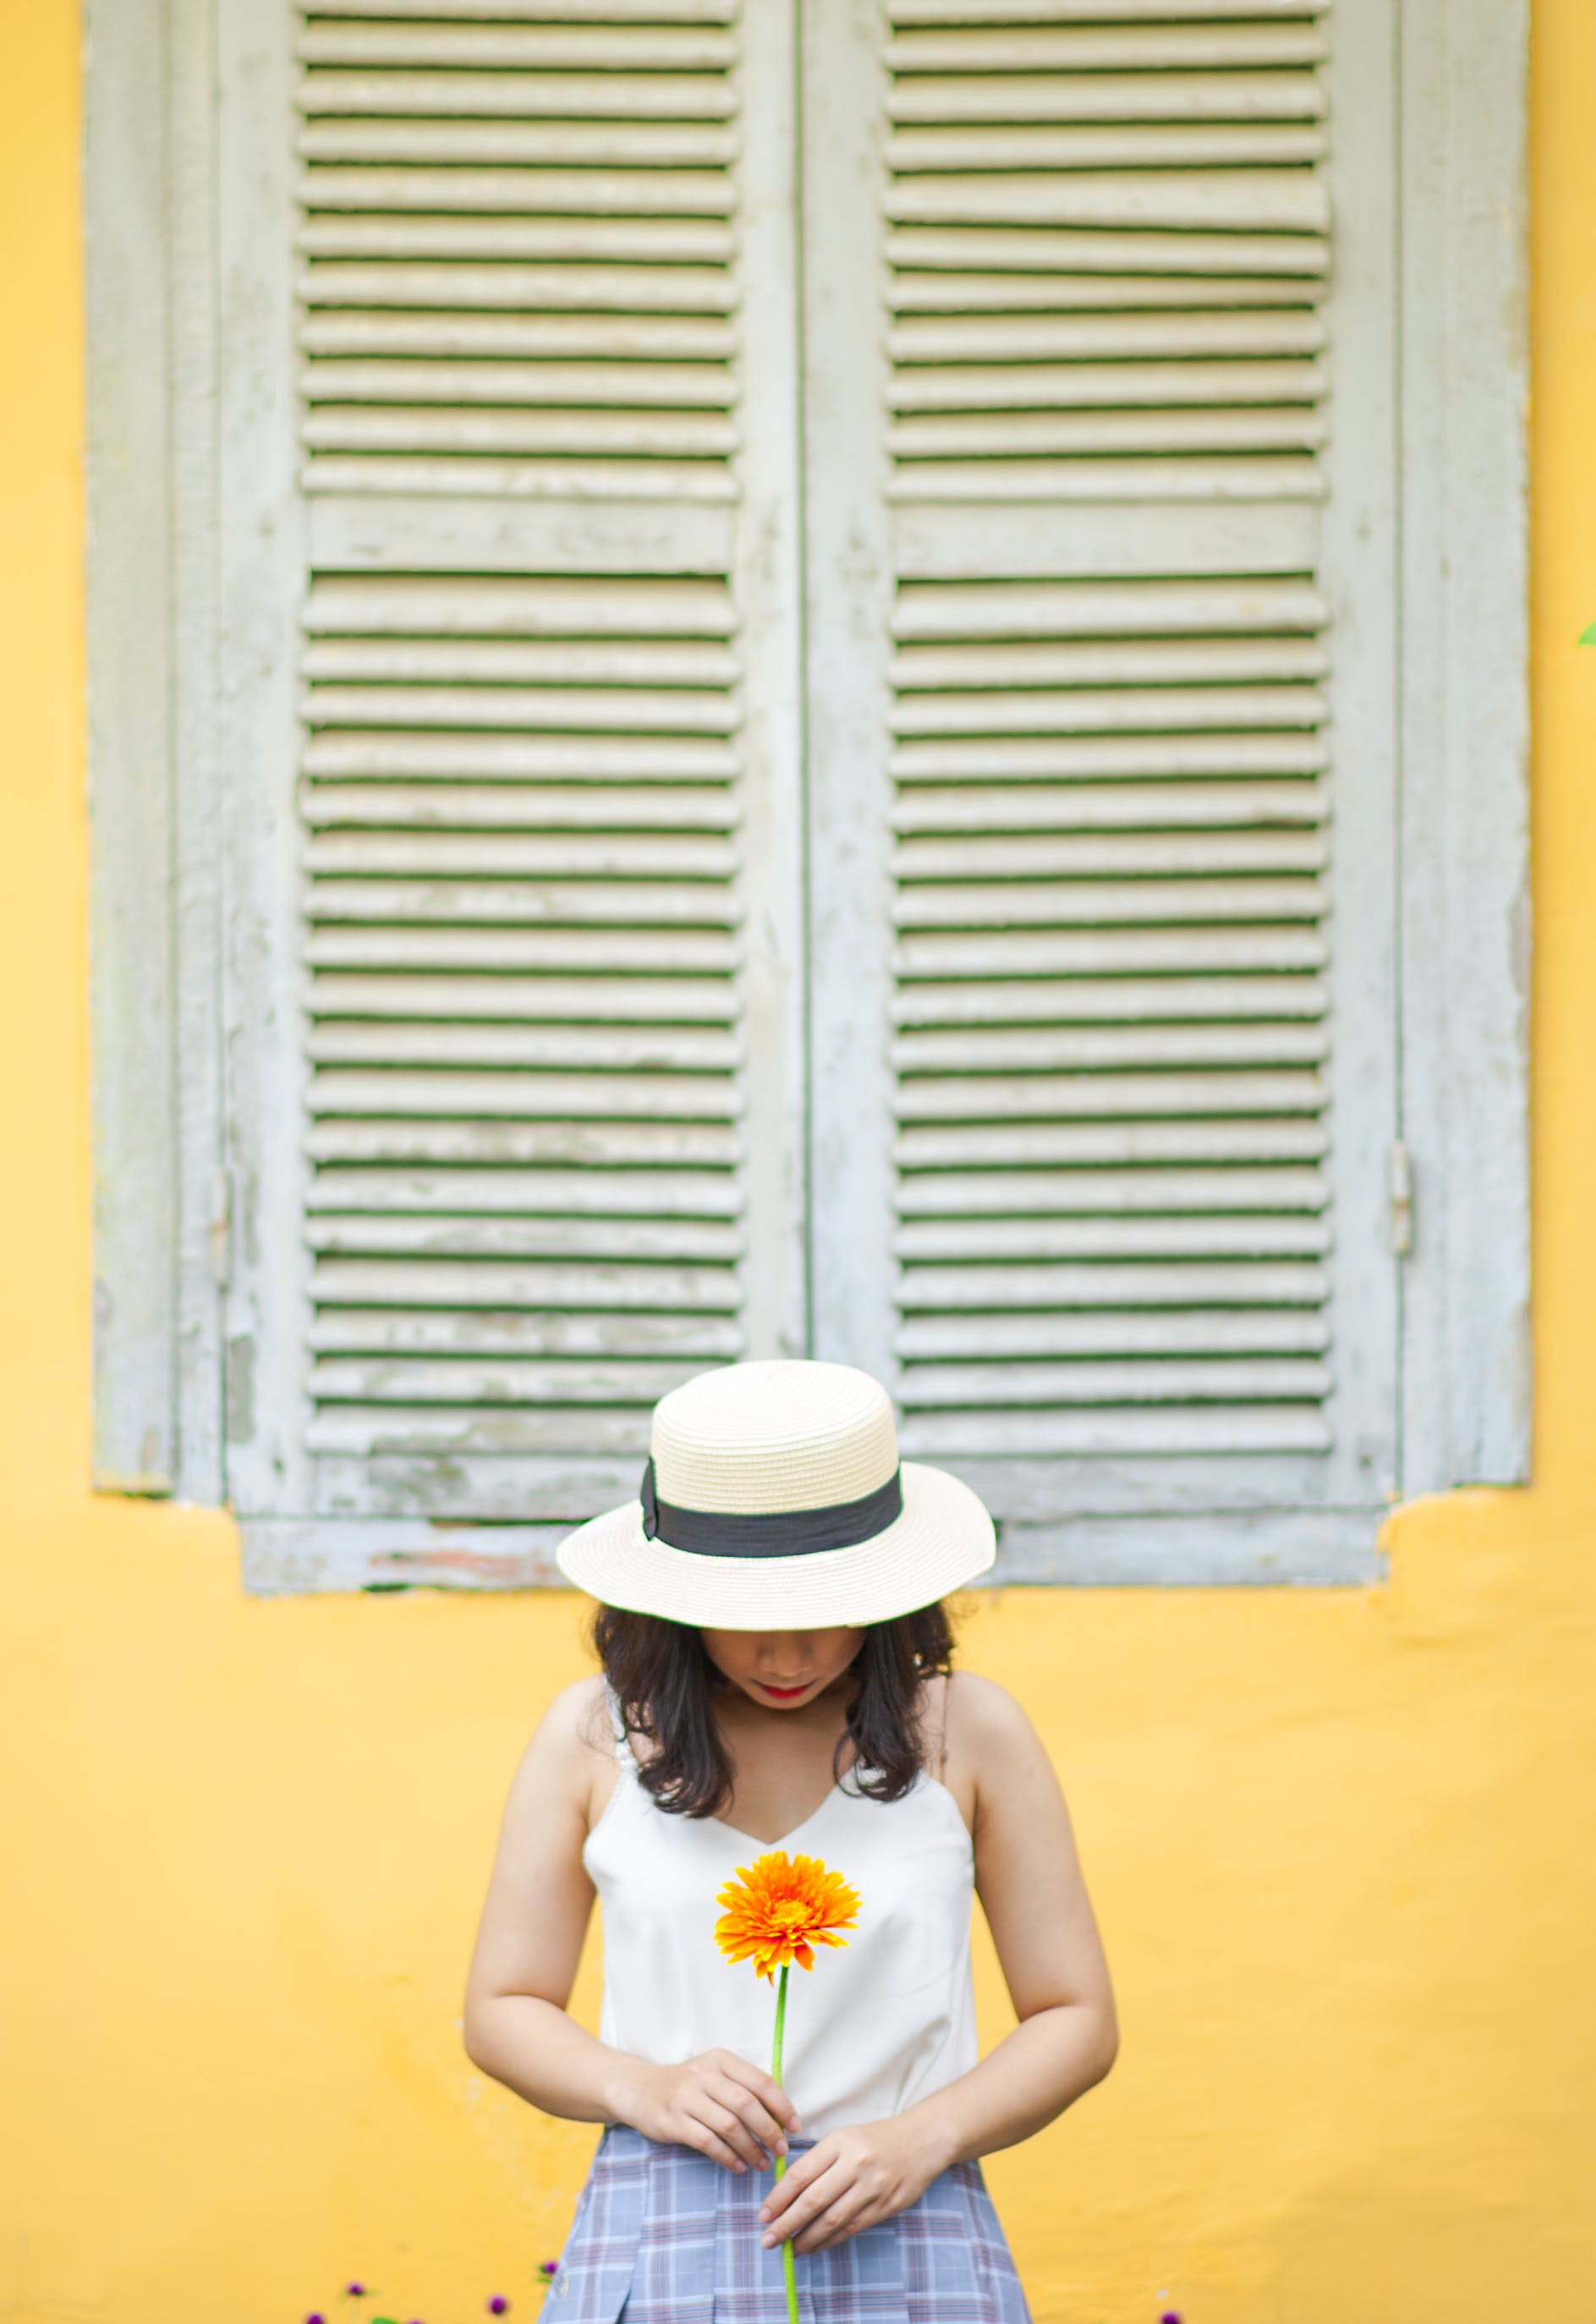 Woman in White Tank Top Holding Sunflower Near Window Outdoors